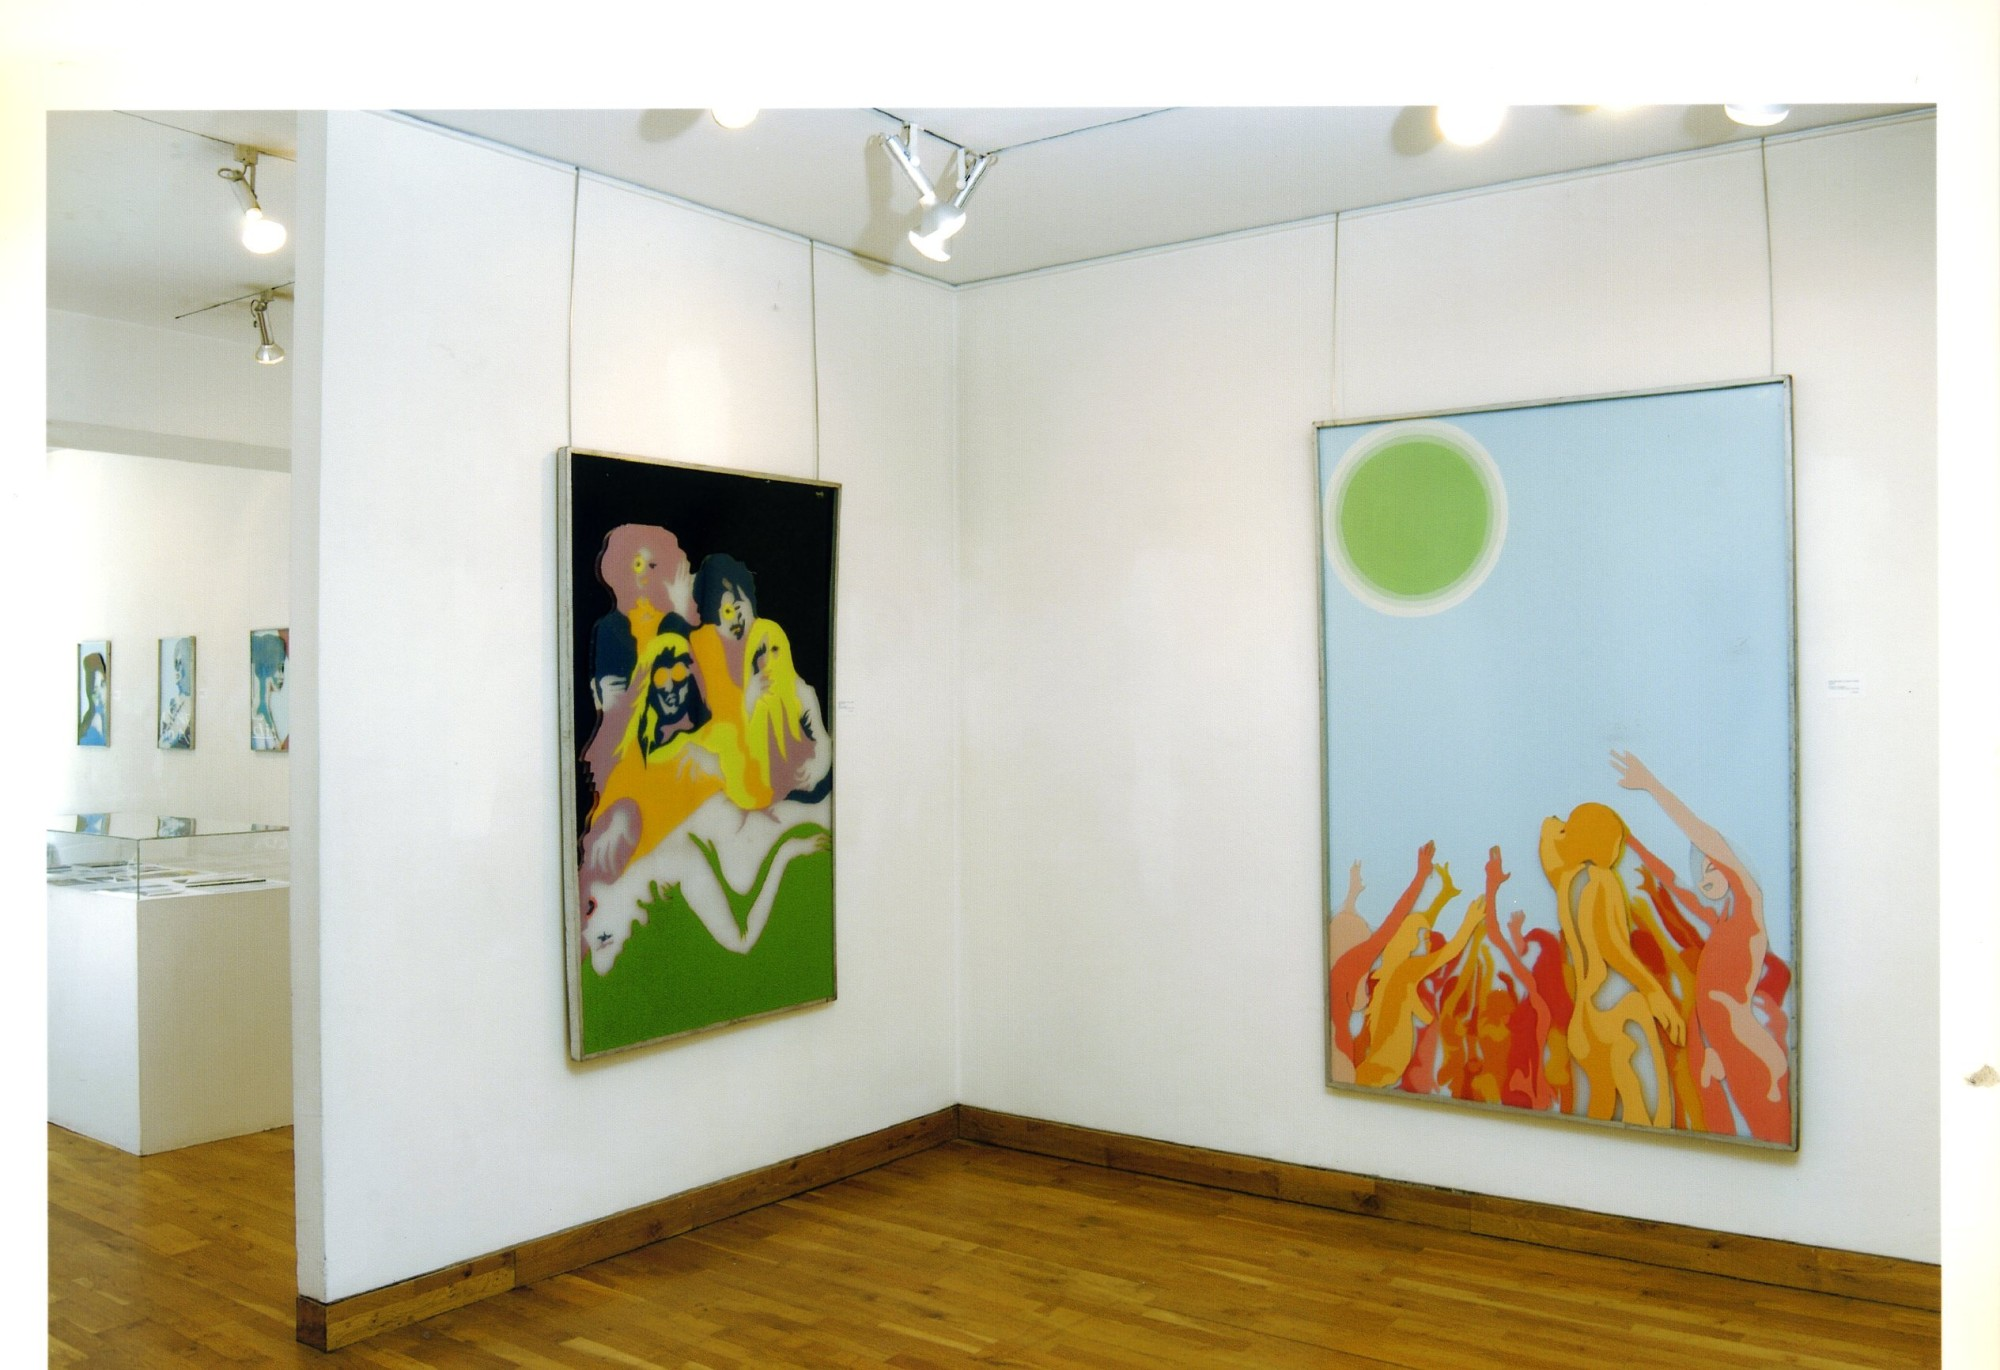 """<span class=""""link fancybox-details-link""""><a href=""""/exhibitions/119/works/image_standalone504/"""">View Detail Page</a></span><p>EVELYNE AXELL   FROM POP ART TO PARADISE   24 MAR - 4 JUL 2005   Installation View</p>"""